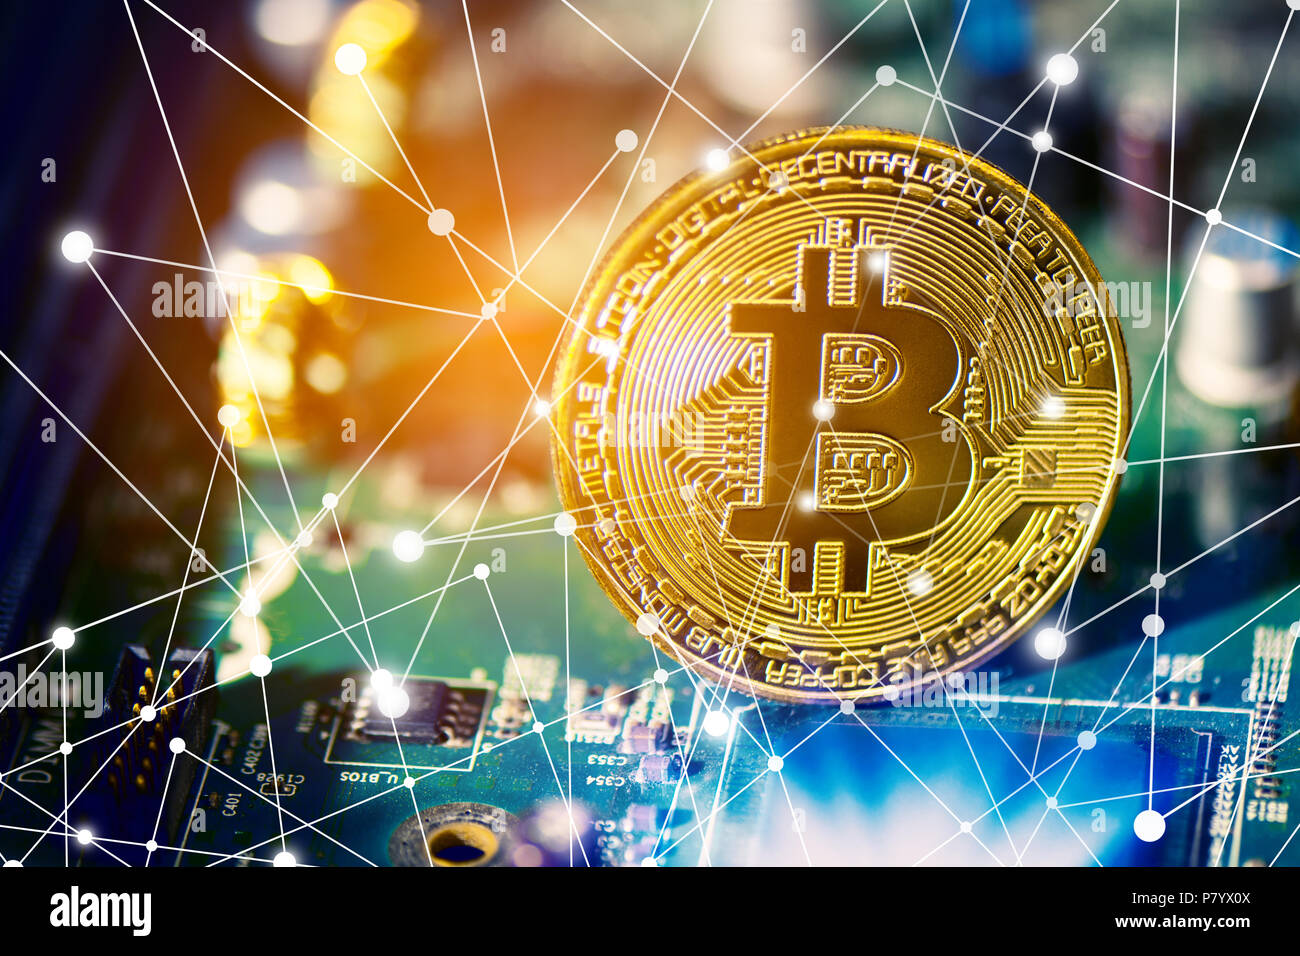 Vector Abstract Computer Circuit Board Technology Element With Animation V6 By Motionworks Videohive Bitcoin On Electronic Cryptography And Money Concept Currency Trading Gold Mining Theme